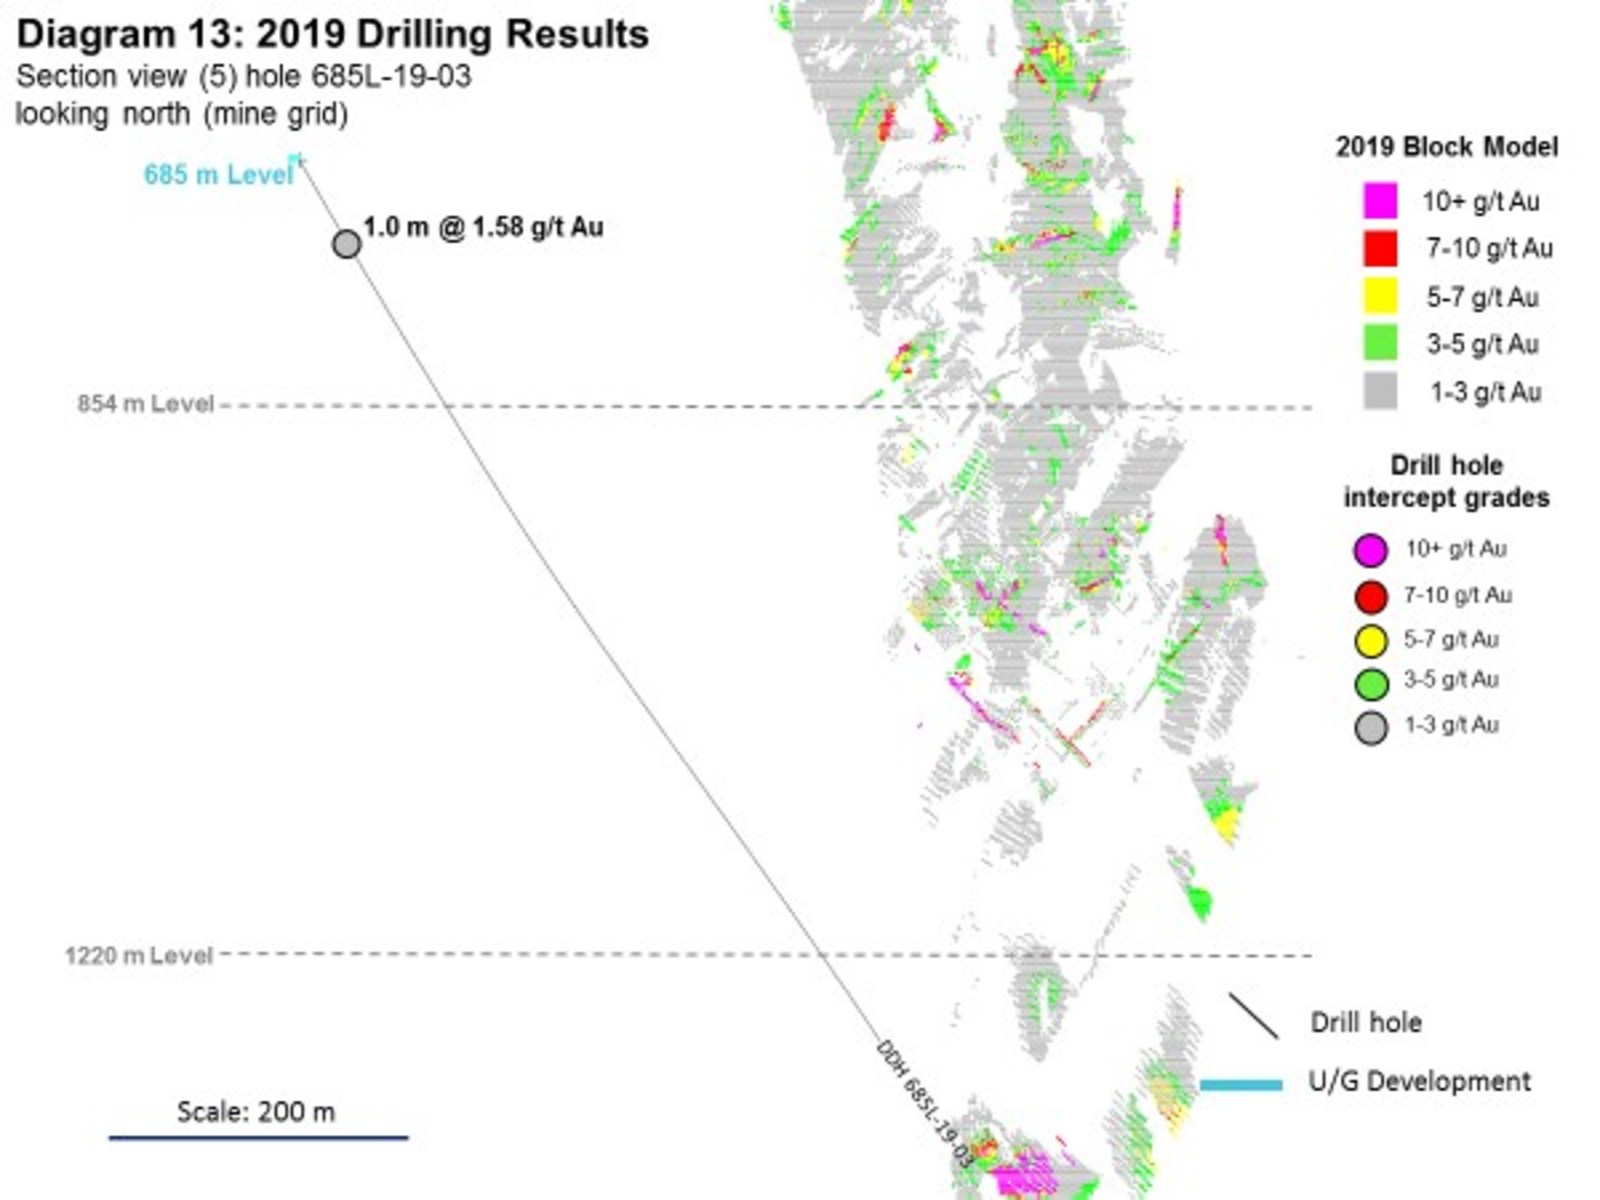 Diagram 13: 2019 Drilling Results